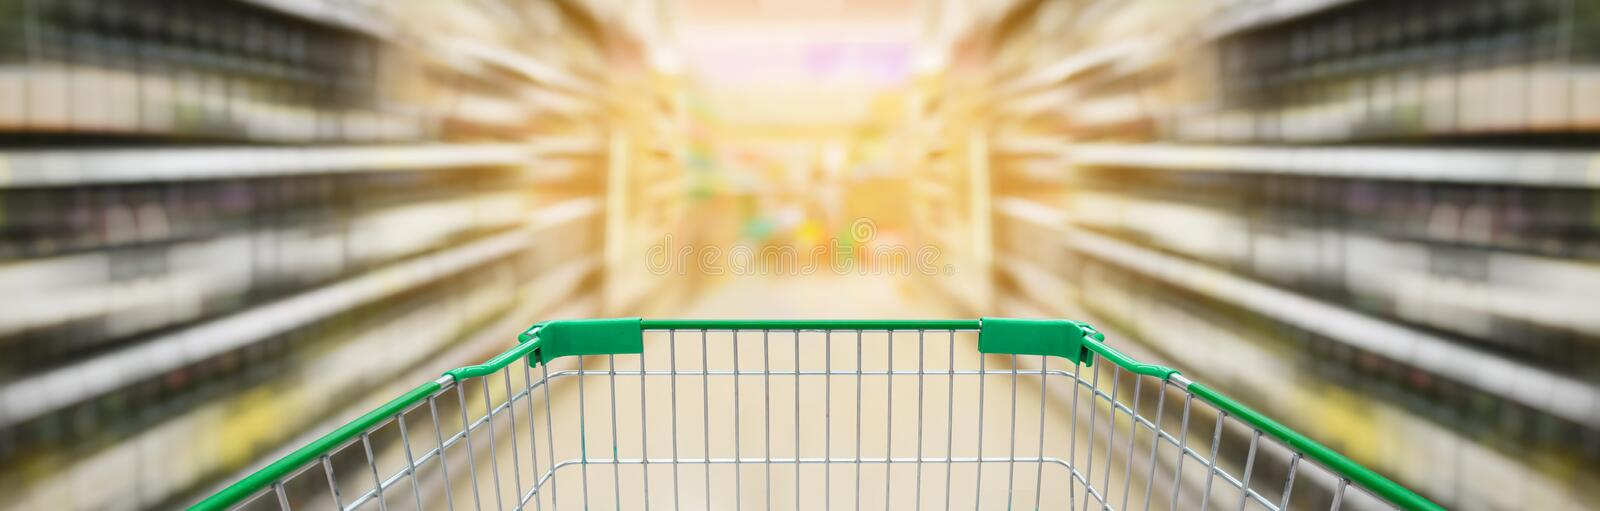 Shopping cart with wine bottles shelves in supermarket aisle royalty free stock photos